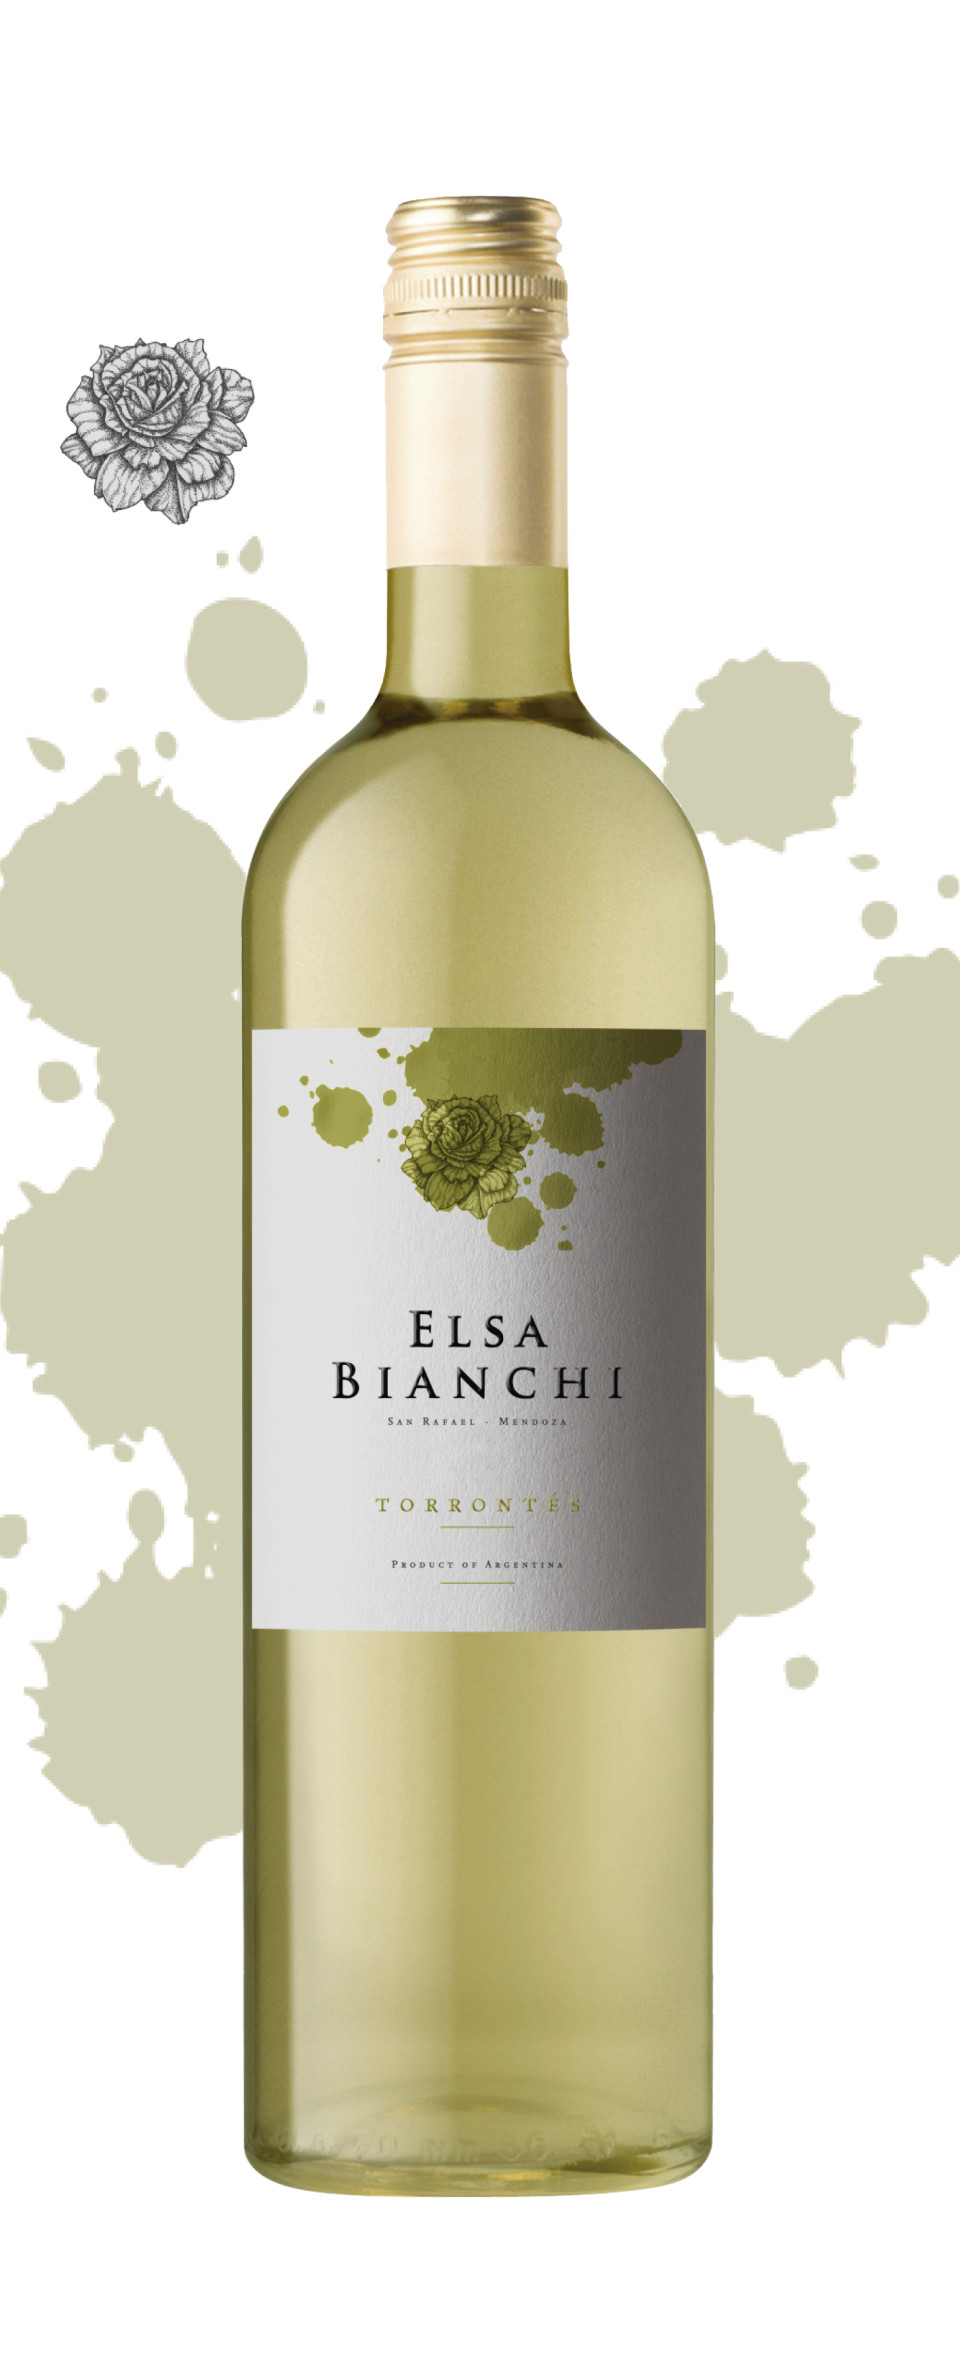 ELSE-ELSABIANCHI-TORRONTES